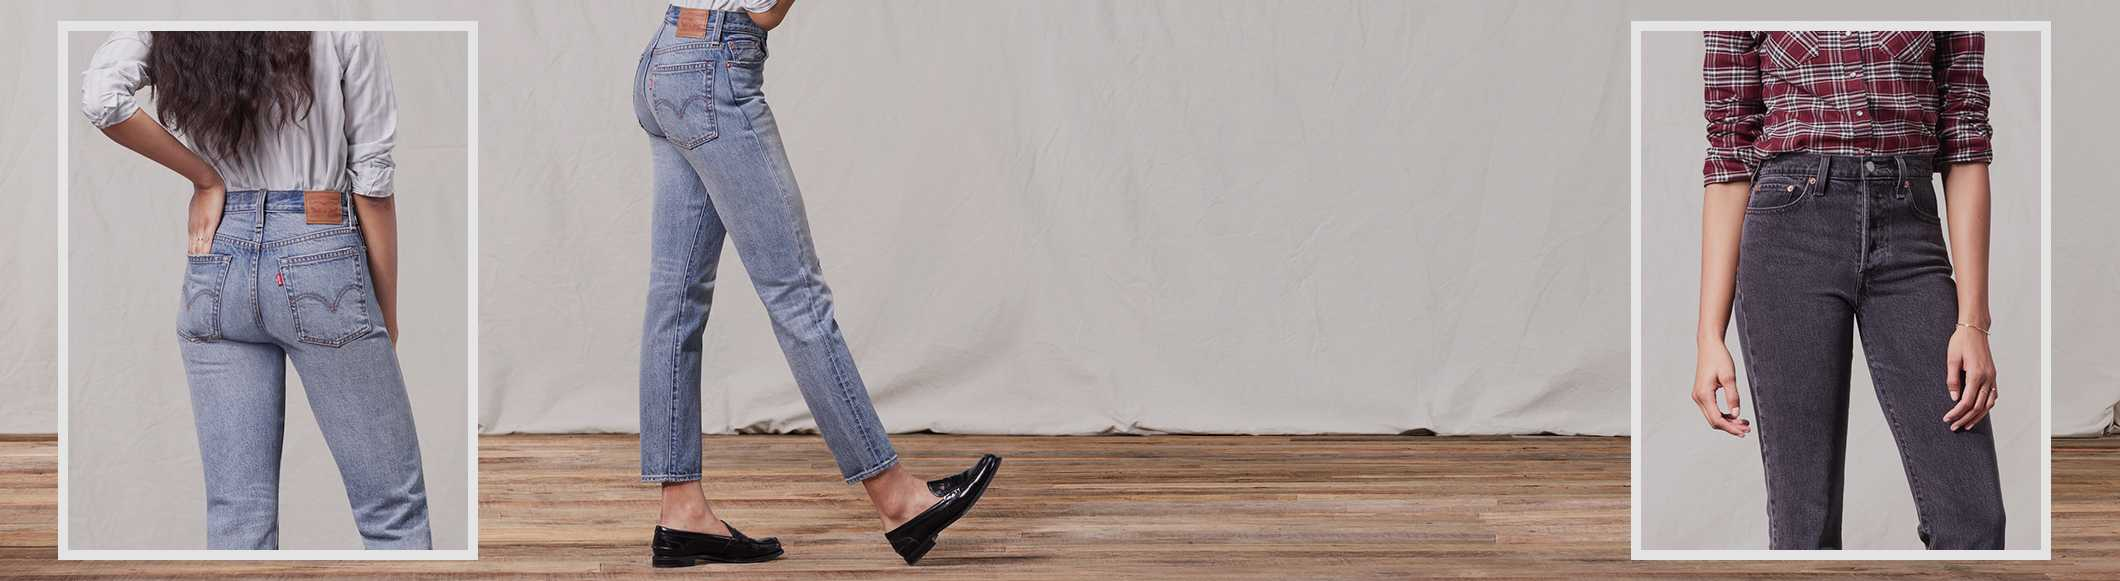 d88e00e1 Levi's Wedgie Fit Jeans - Shop the Iconic Wedgie Jean | Levi's® US